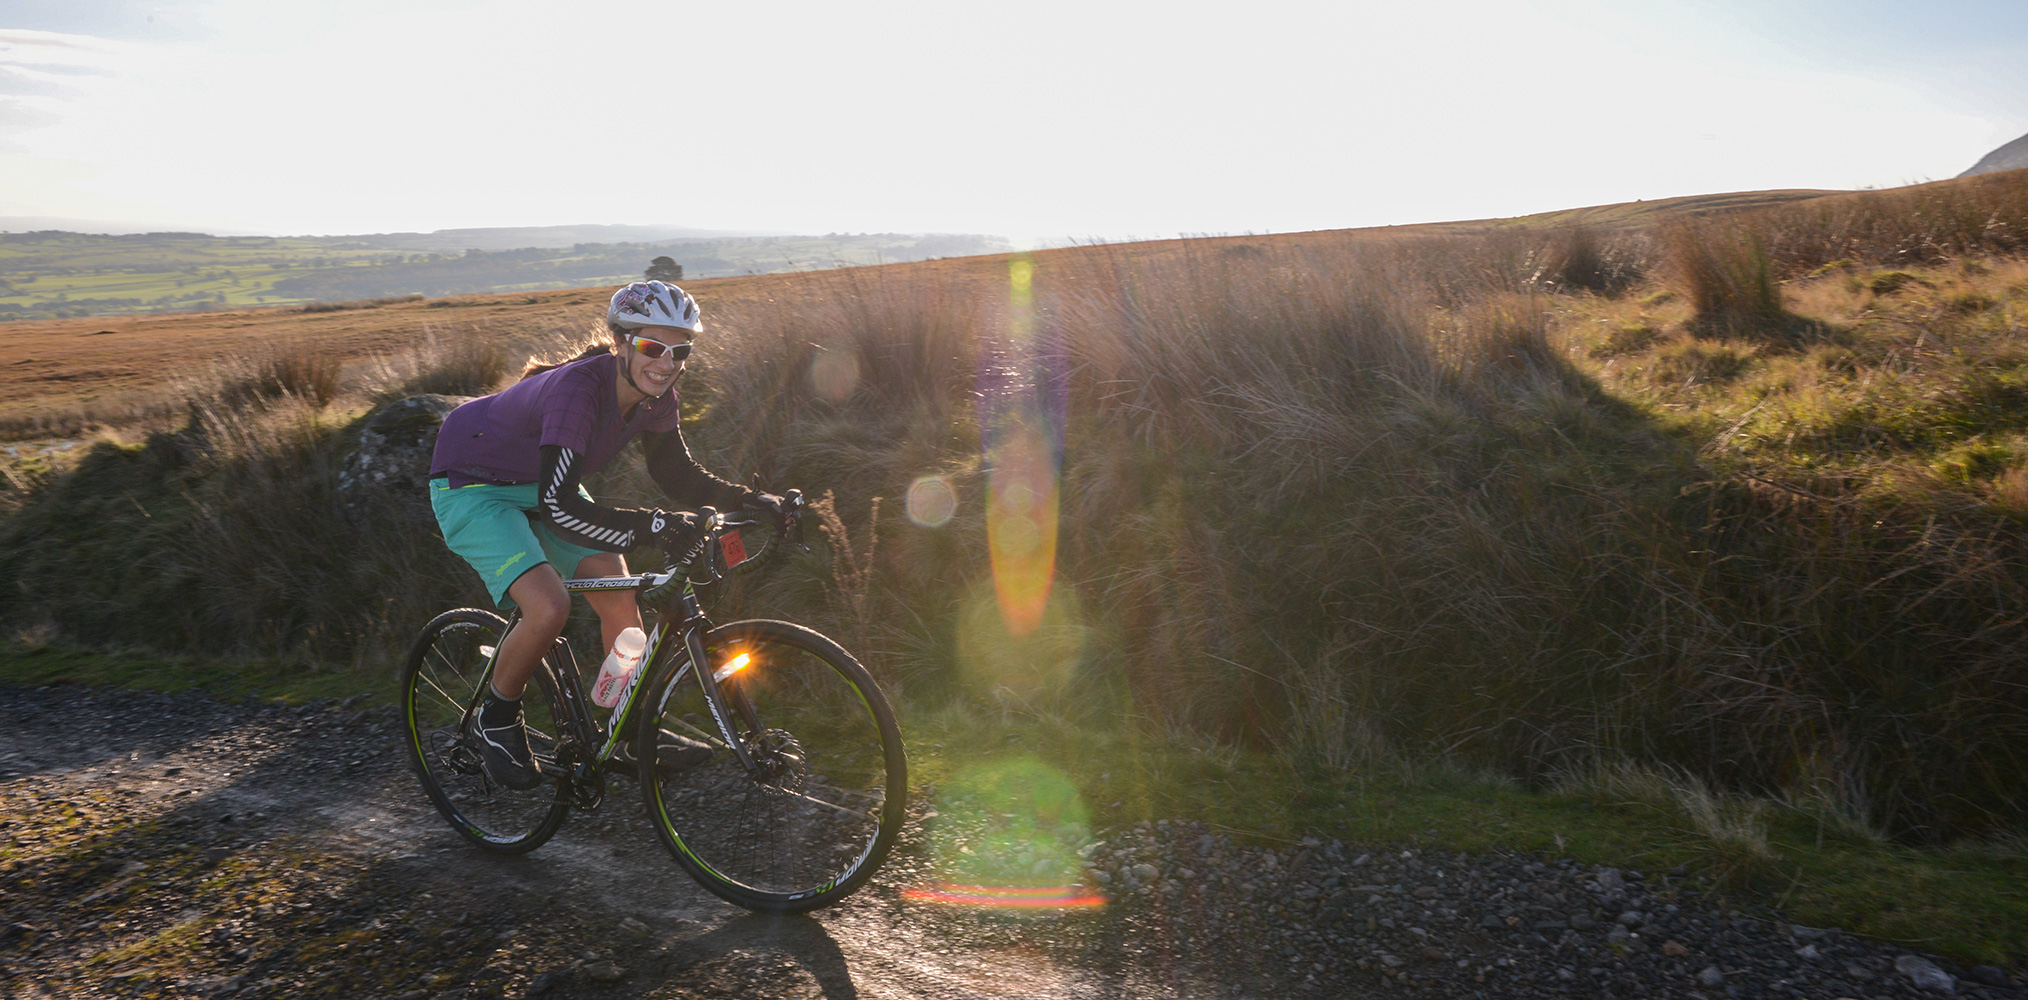 The Monster Miles is a 62 mile (55% off road) Cyclo-Cross Sportive in Cumbria organised by Cycling Weekly and run by Rather Be CyclingHere the leading riders are coming up onto Caldbeck Commons from Mosedale